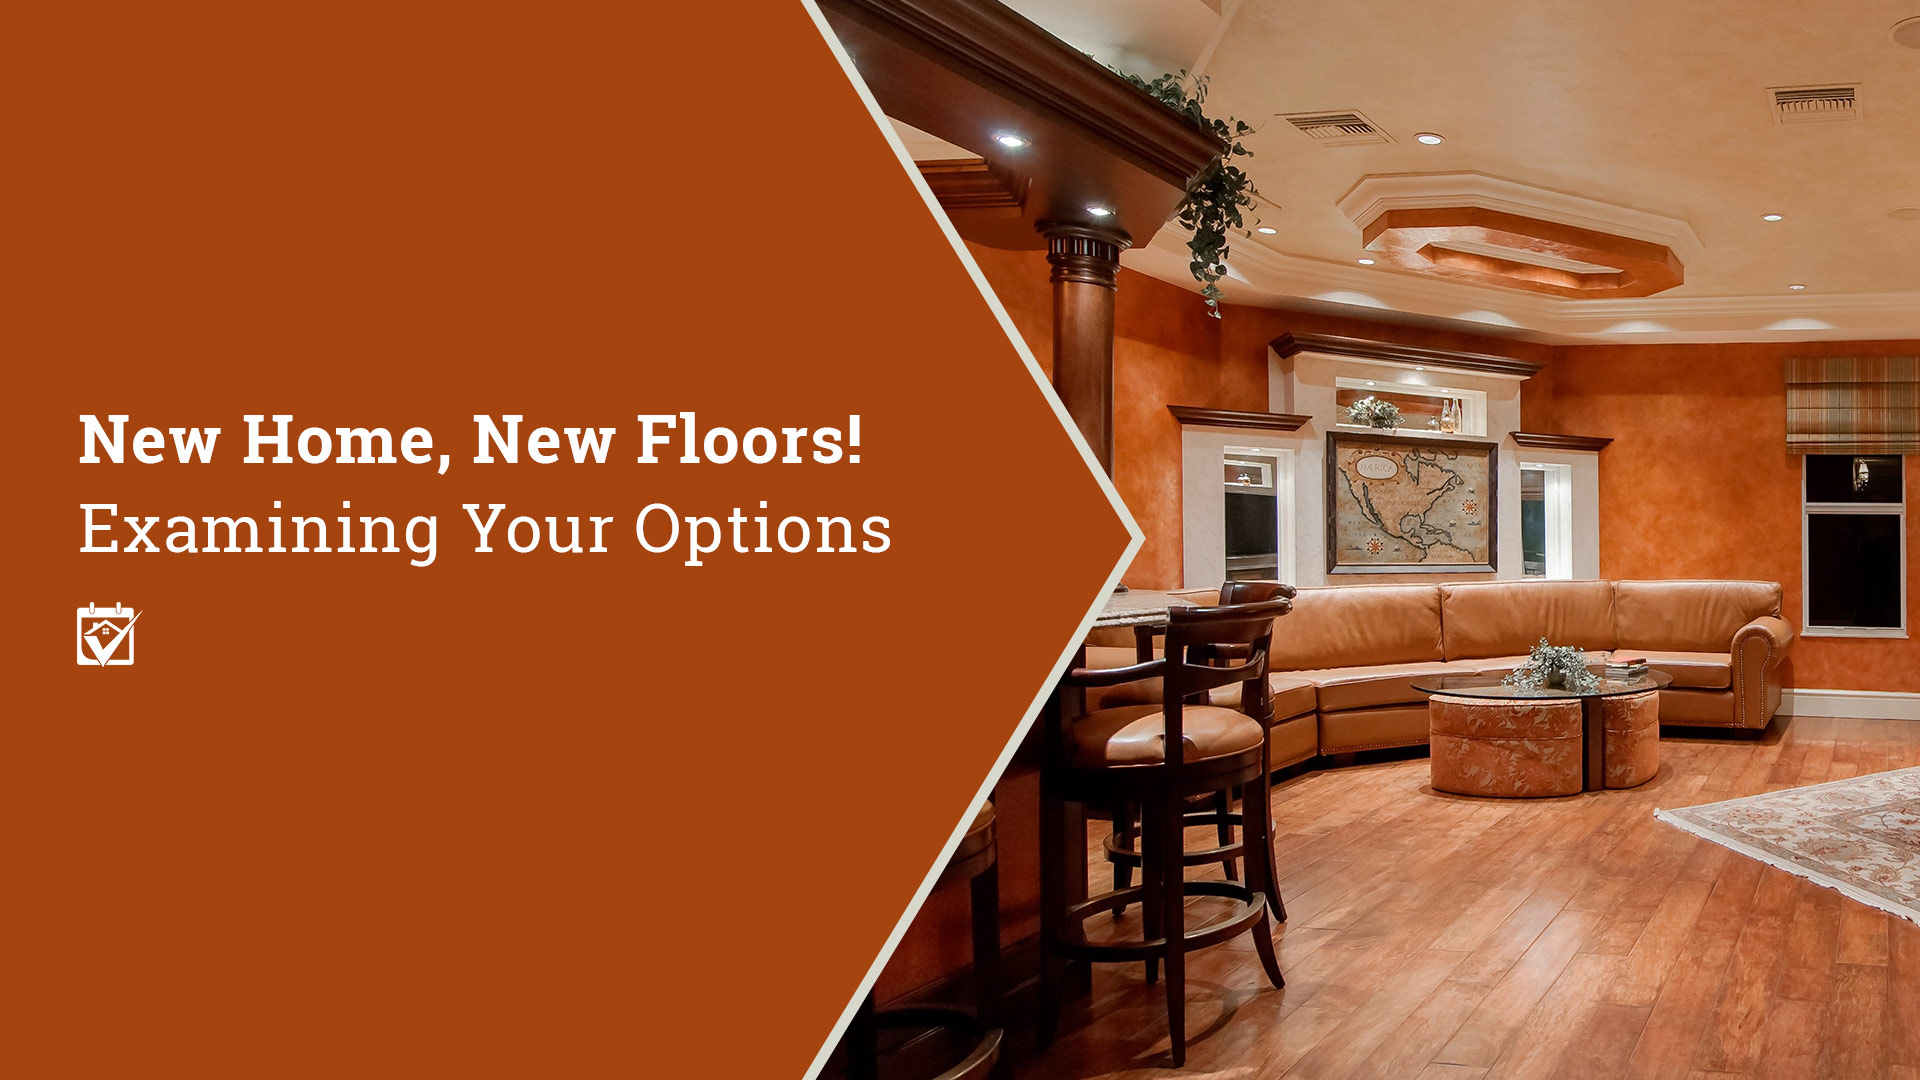 New home new floors examing your options for New home options